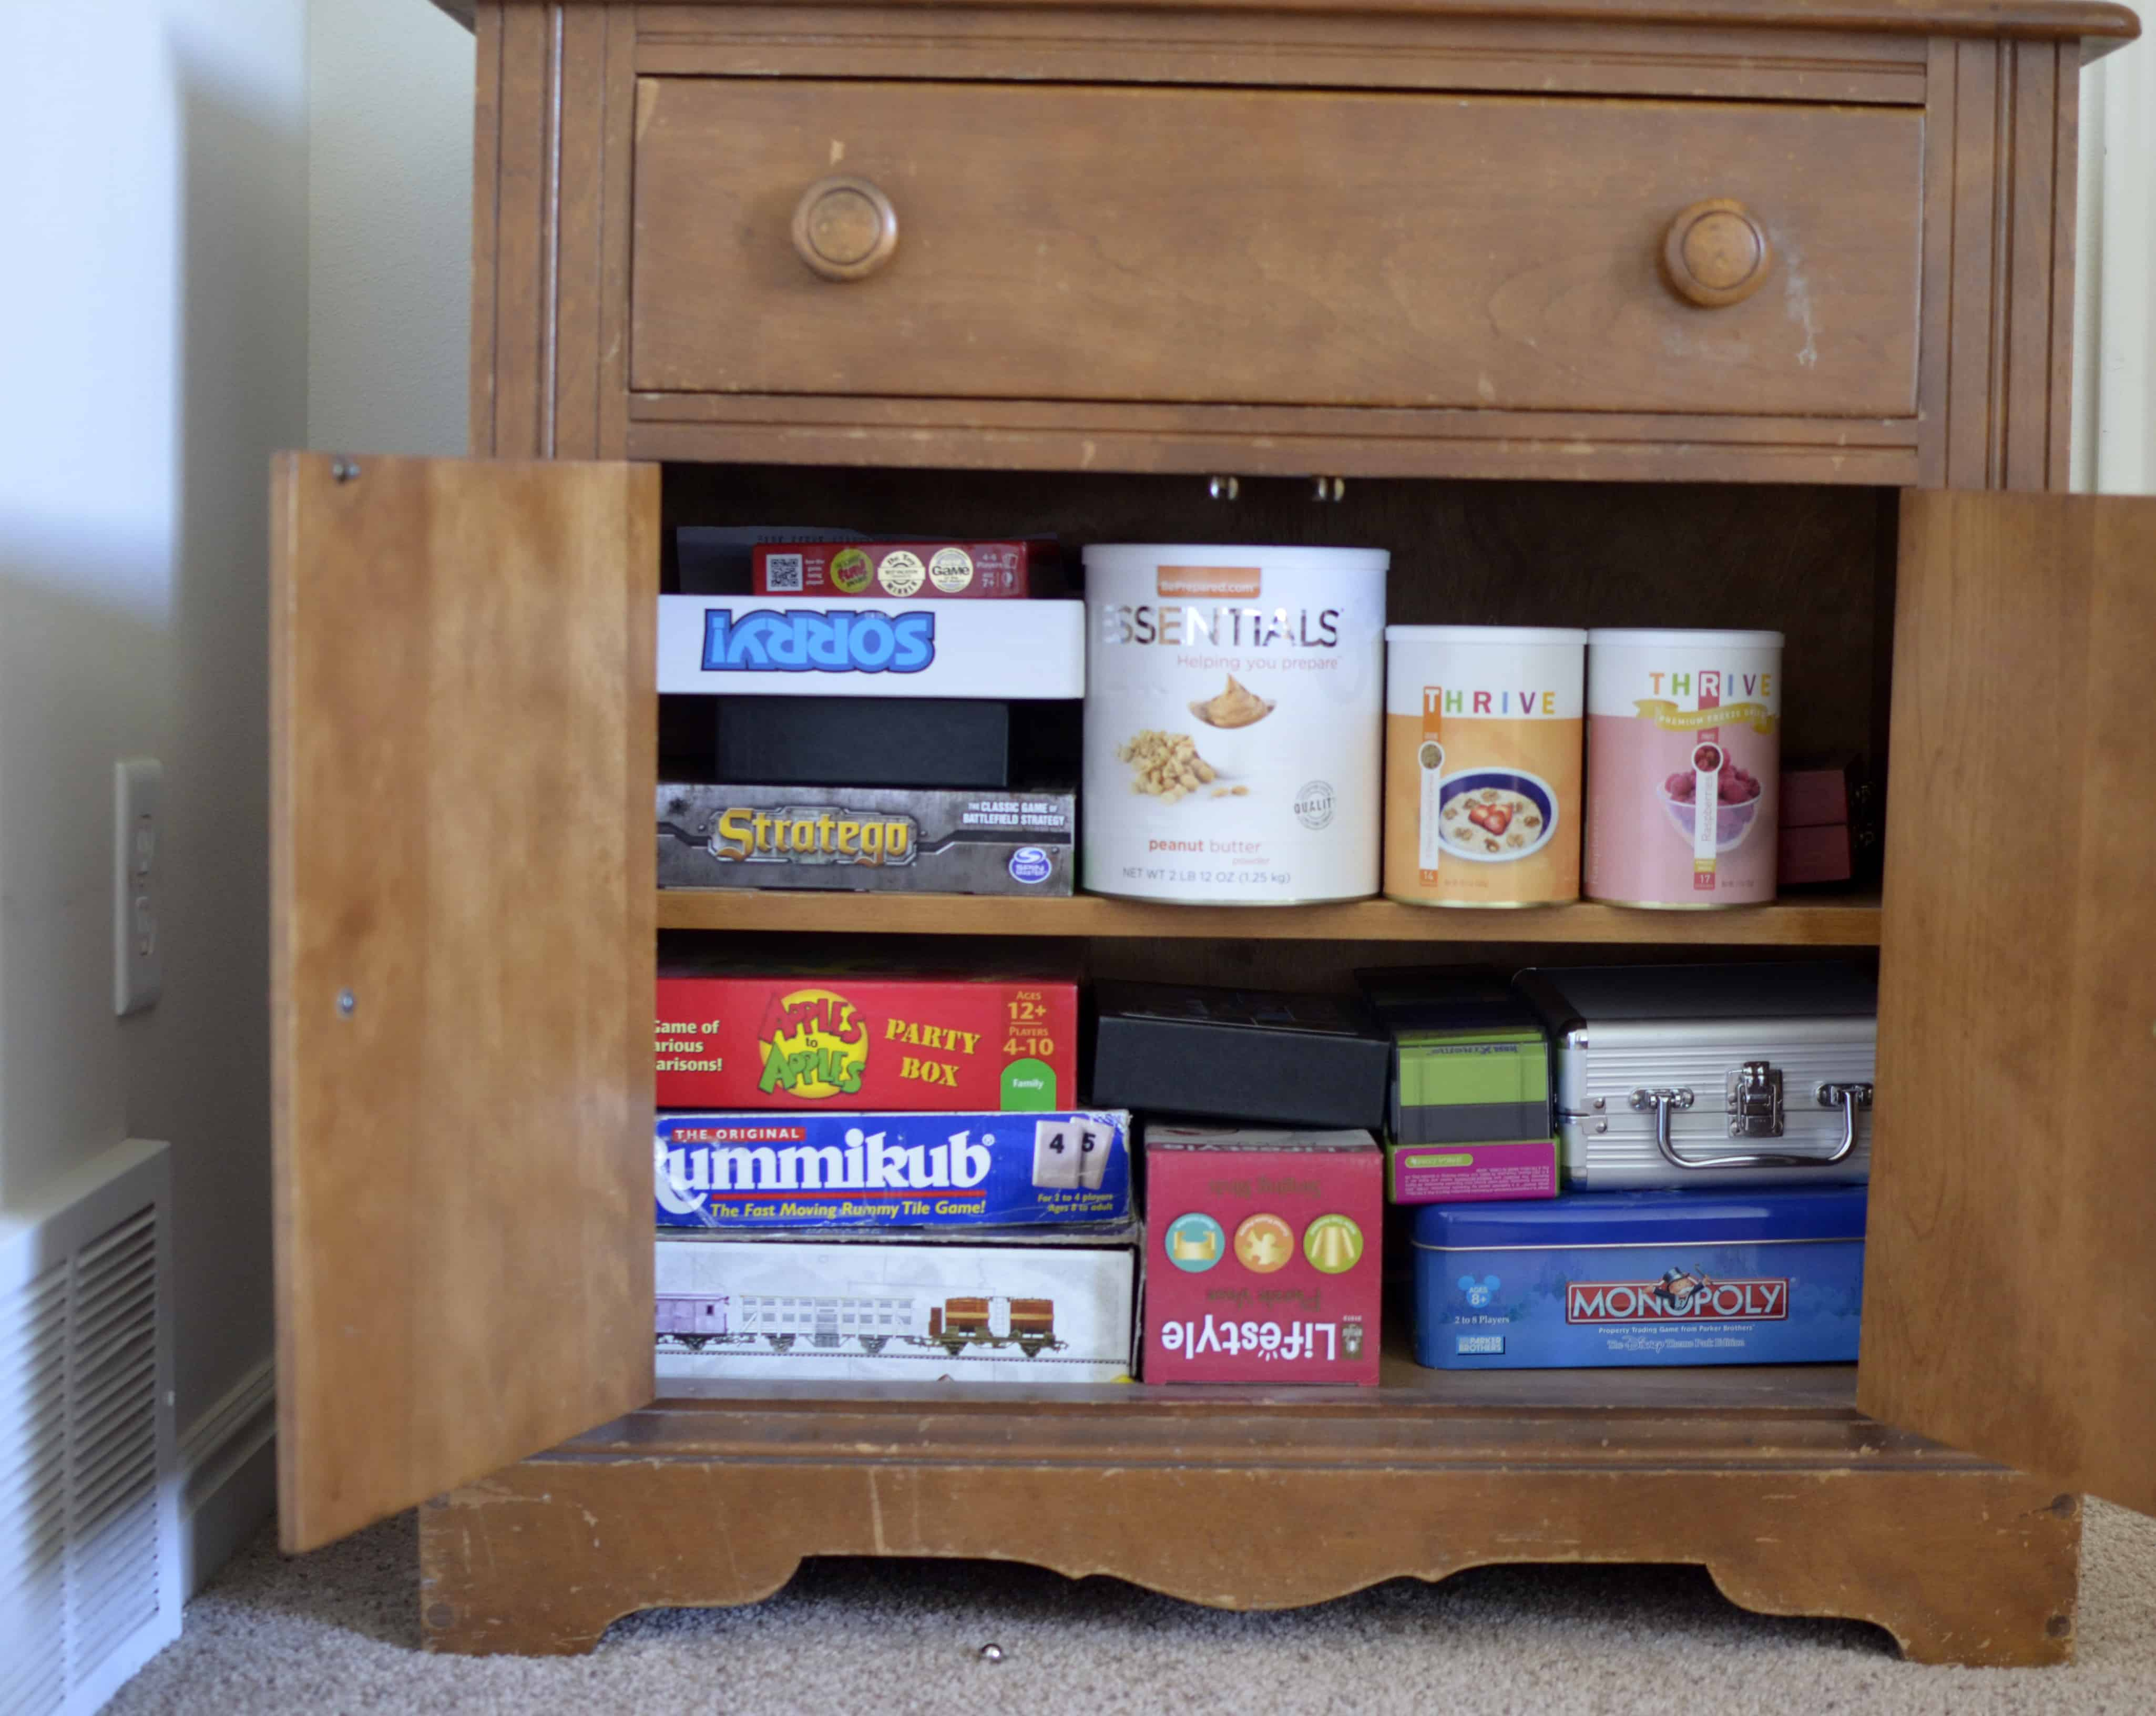 5 New Ideas For Storing Food In Small Places The Organized Mom